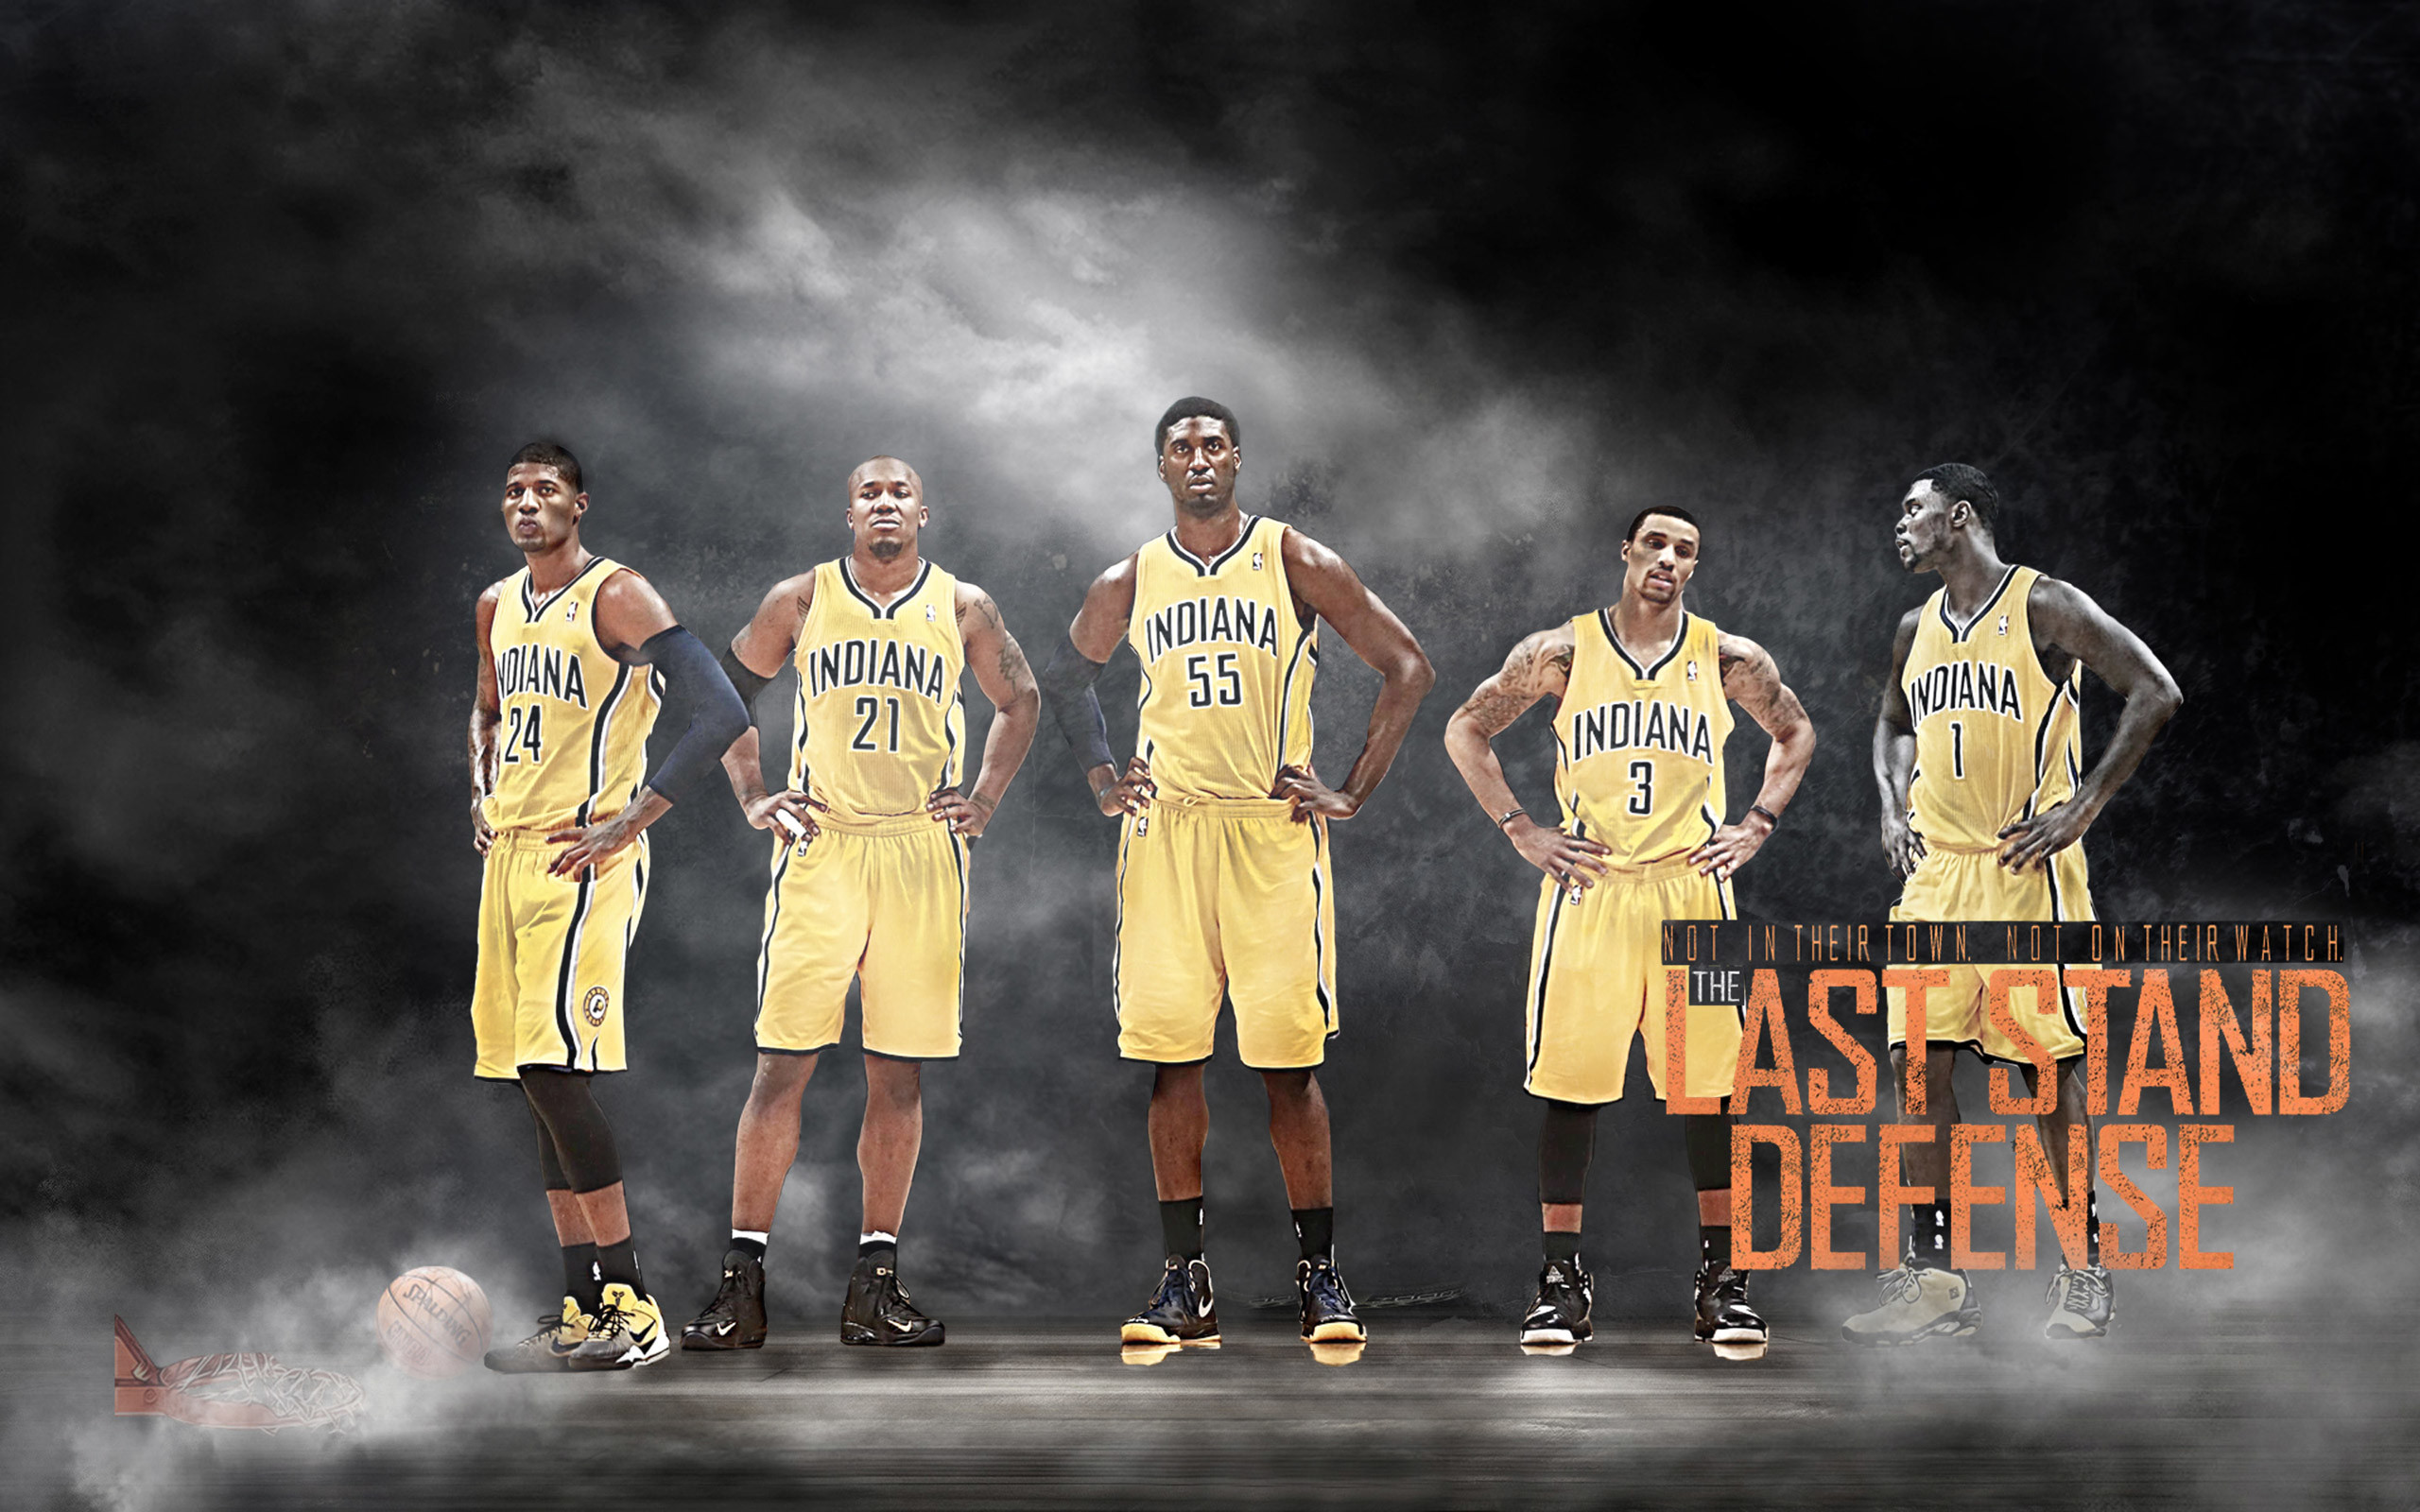 2560x1600 Indiana Pacers Basketball Team Wallpaper 2014 #2864 Wallpaper